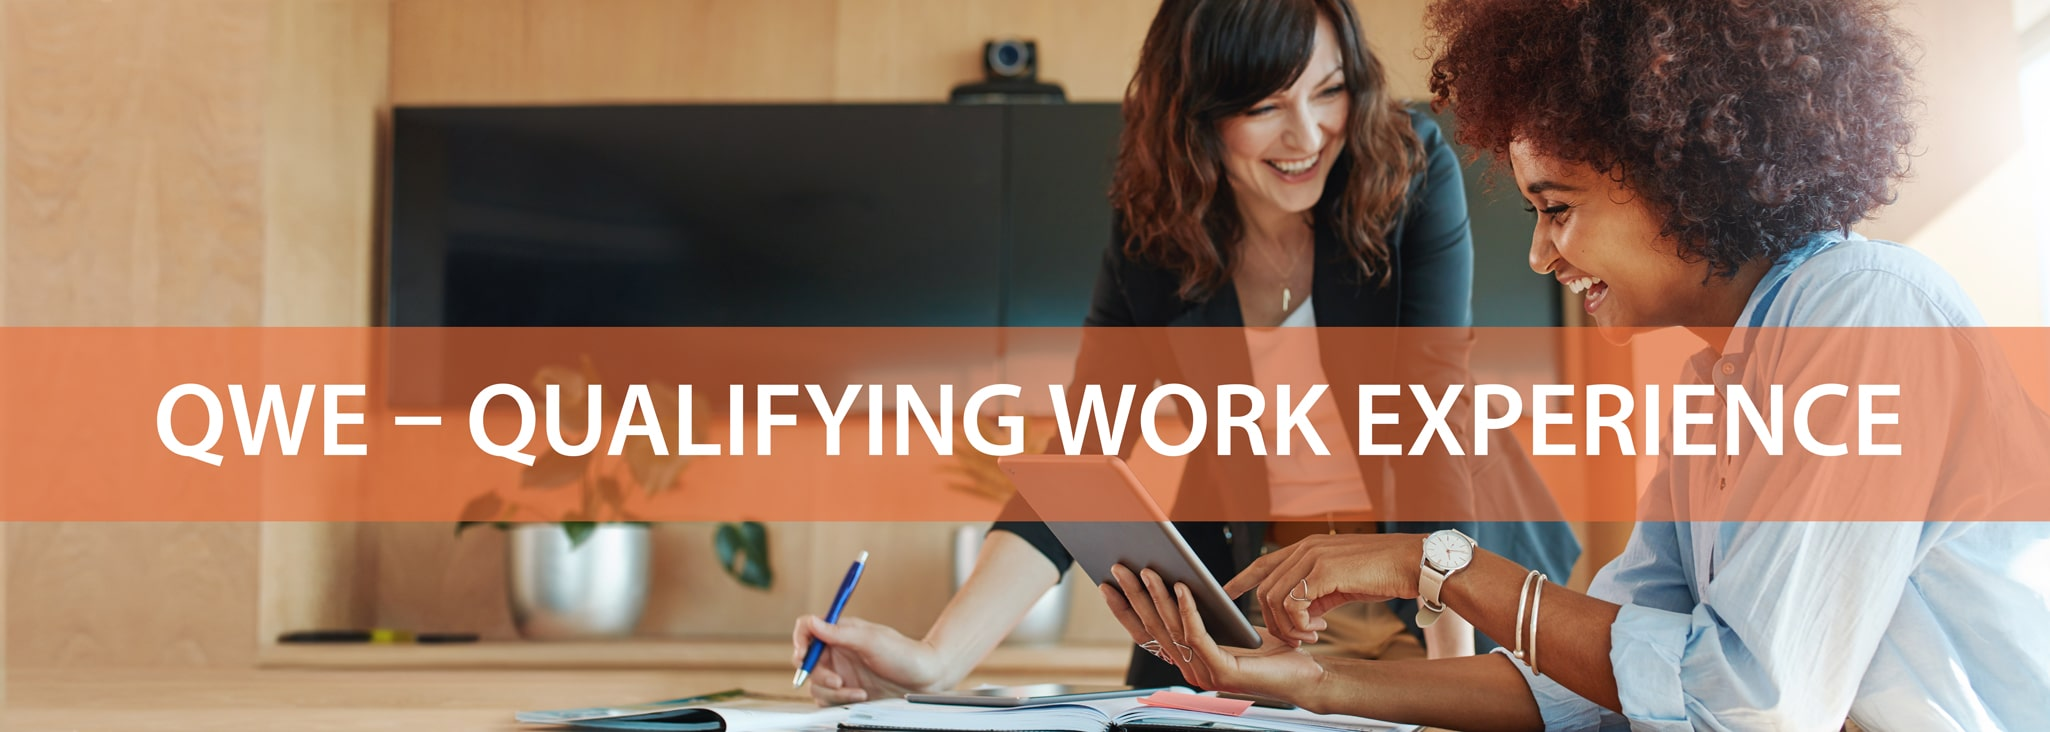 QWE - Qualifying Work Experience